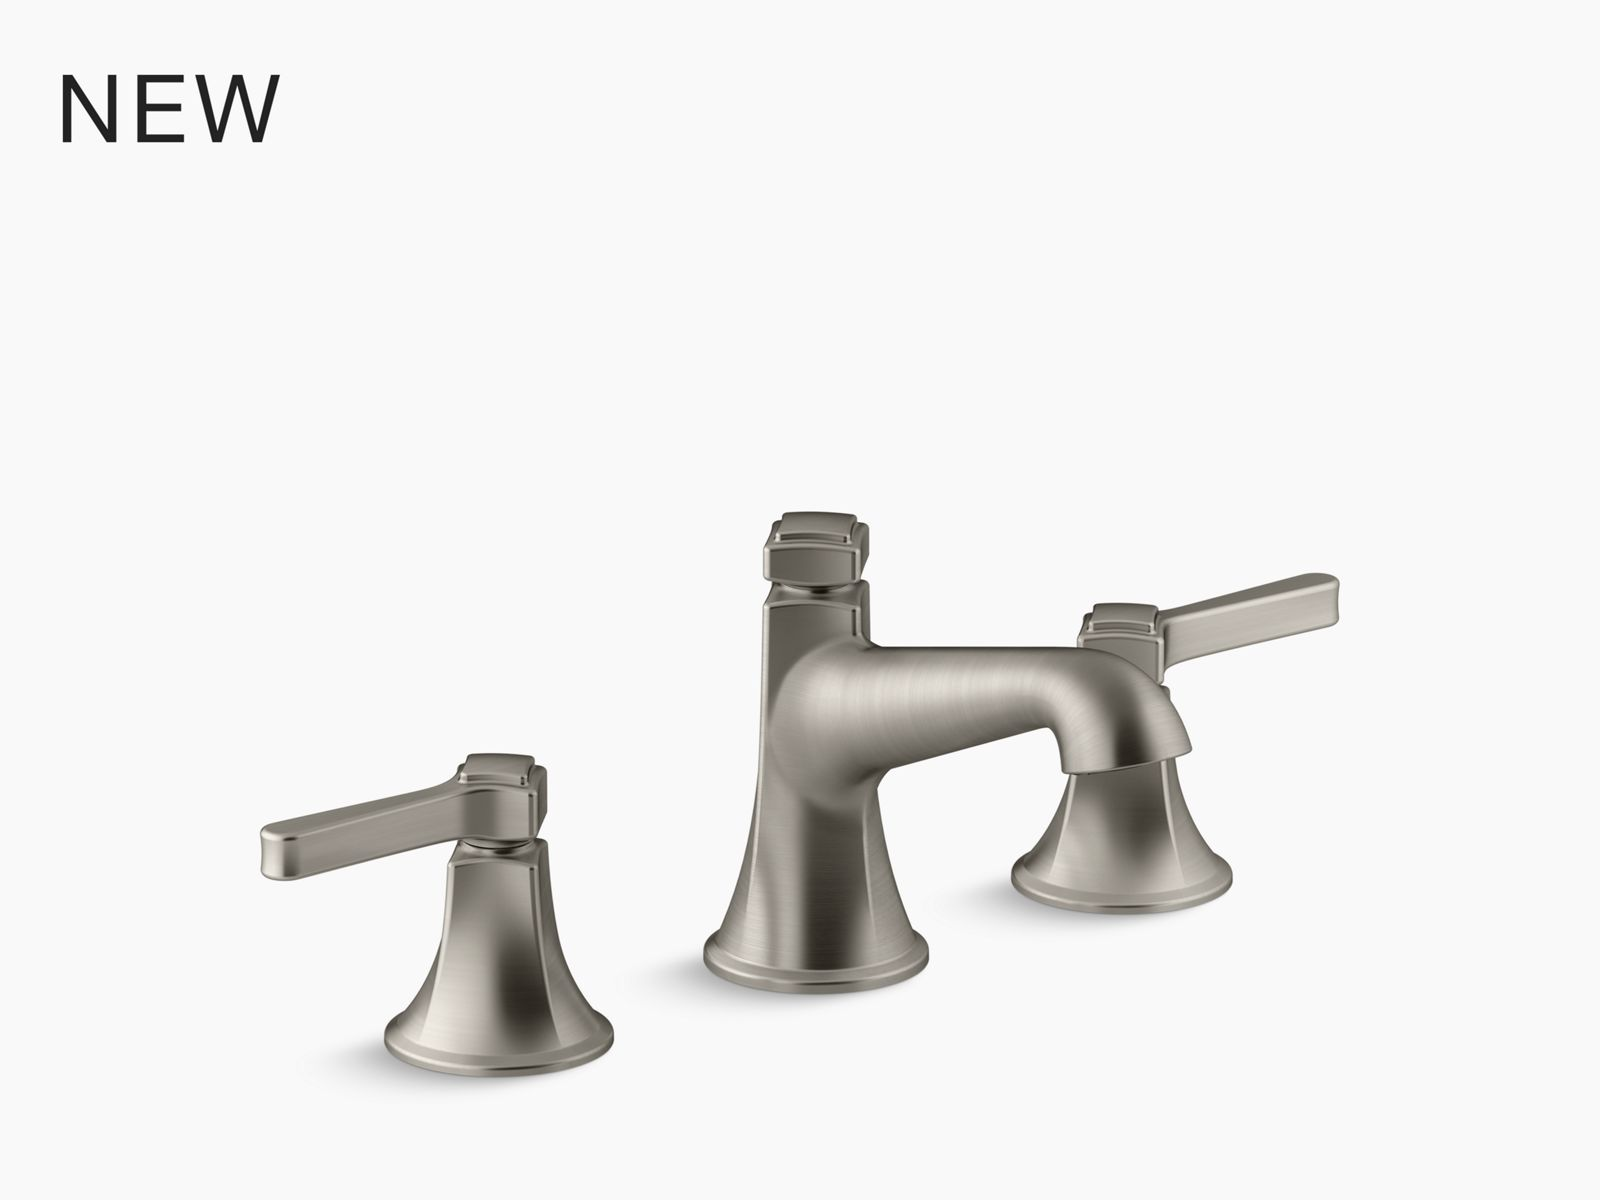 purist wall mount bathroom sink faucet trim with 9 90 degree angle spout and cross handles requires valve